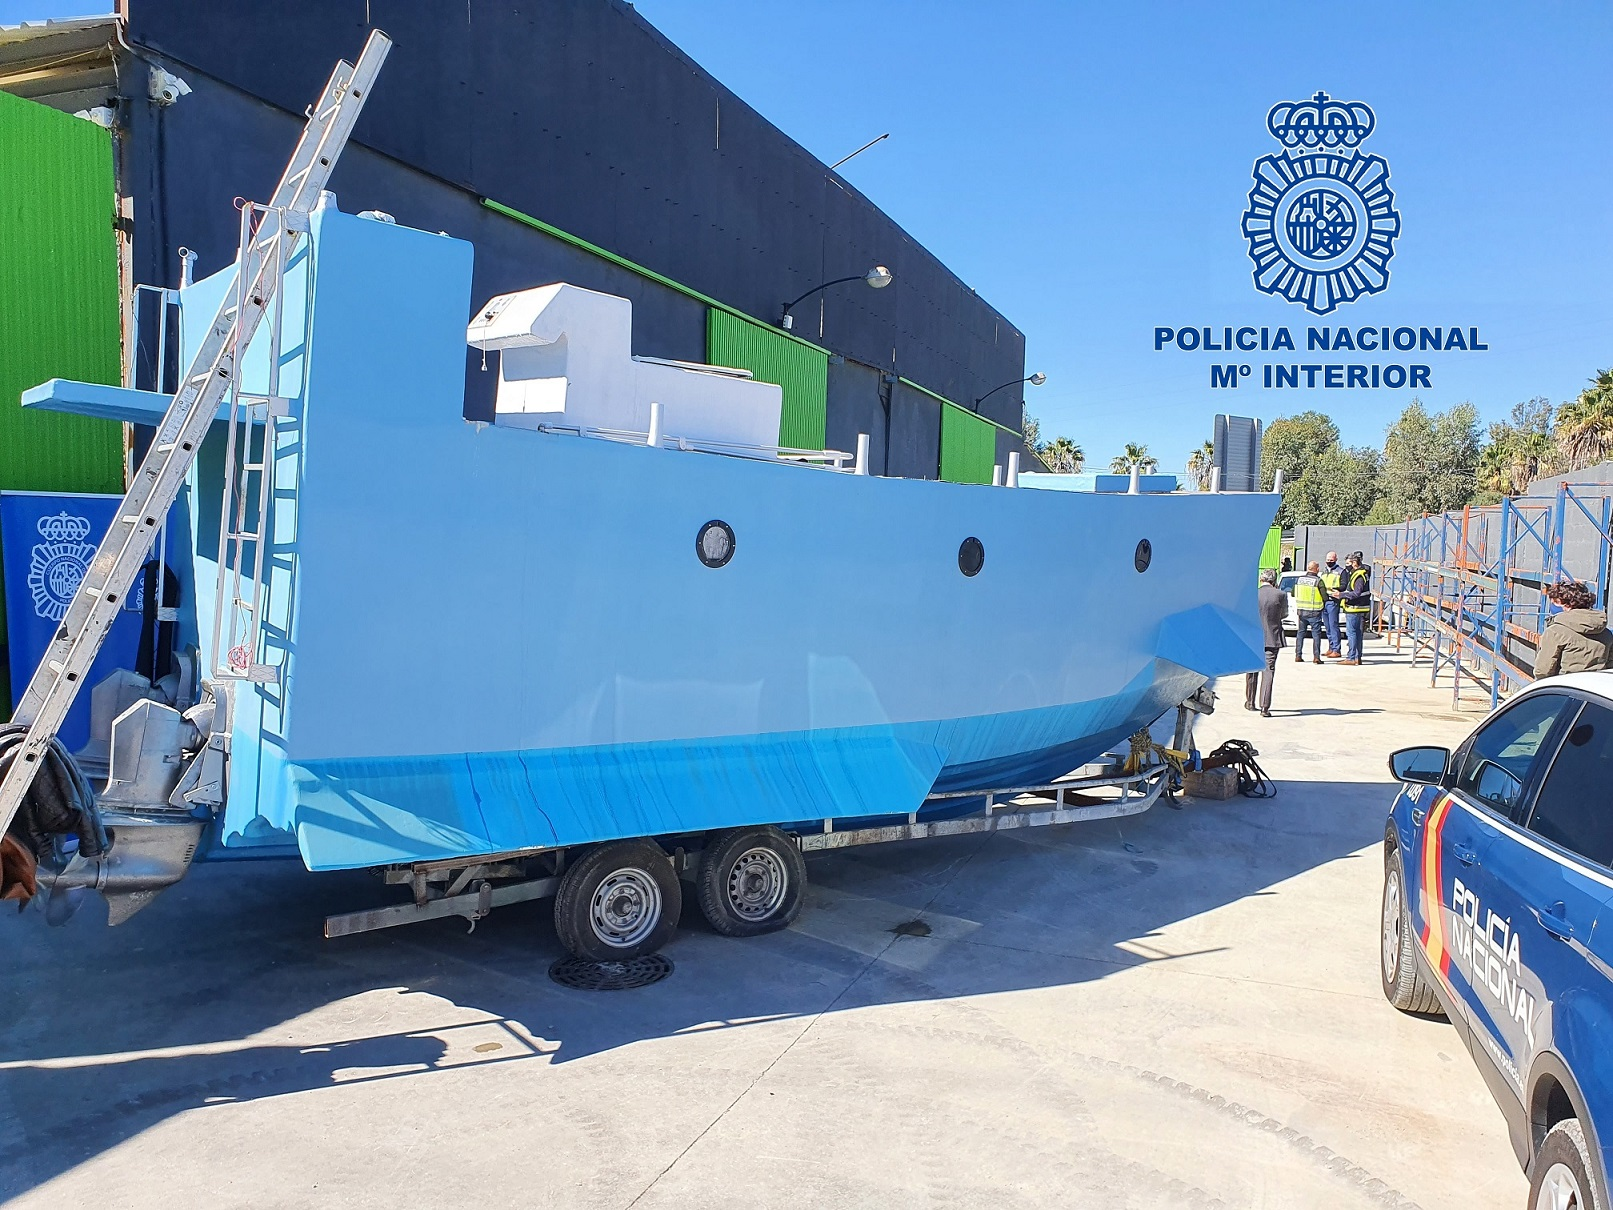 Spanish Cops Seize Homemade 'Narco-Submarine' Intended for ...